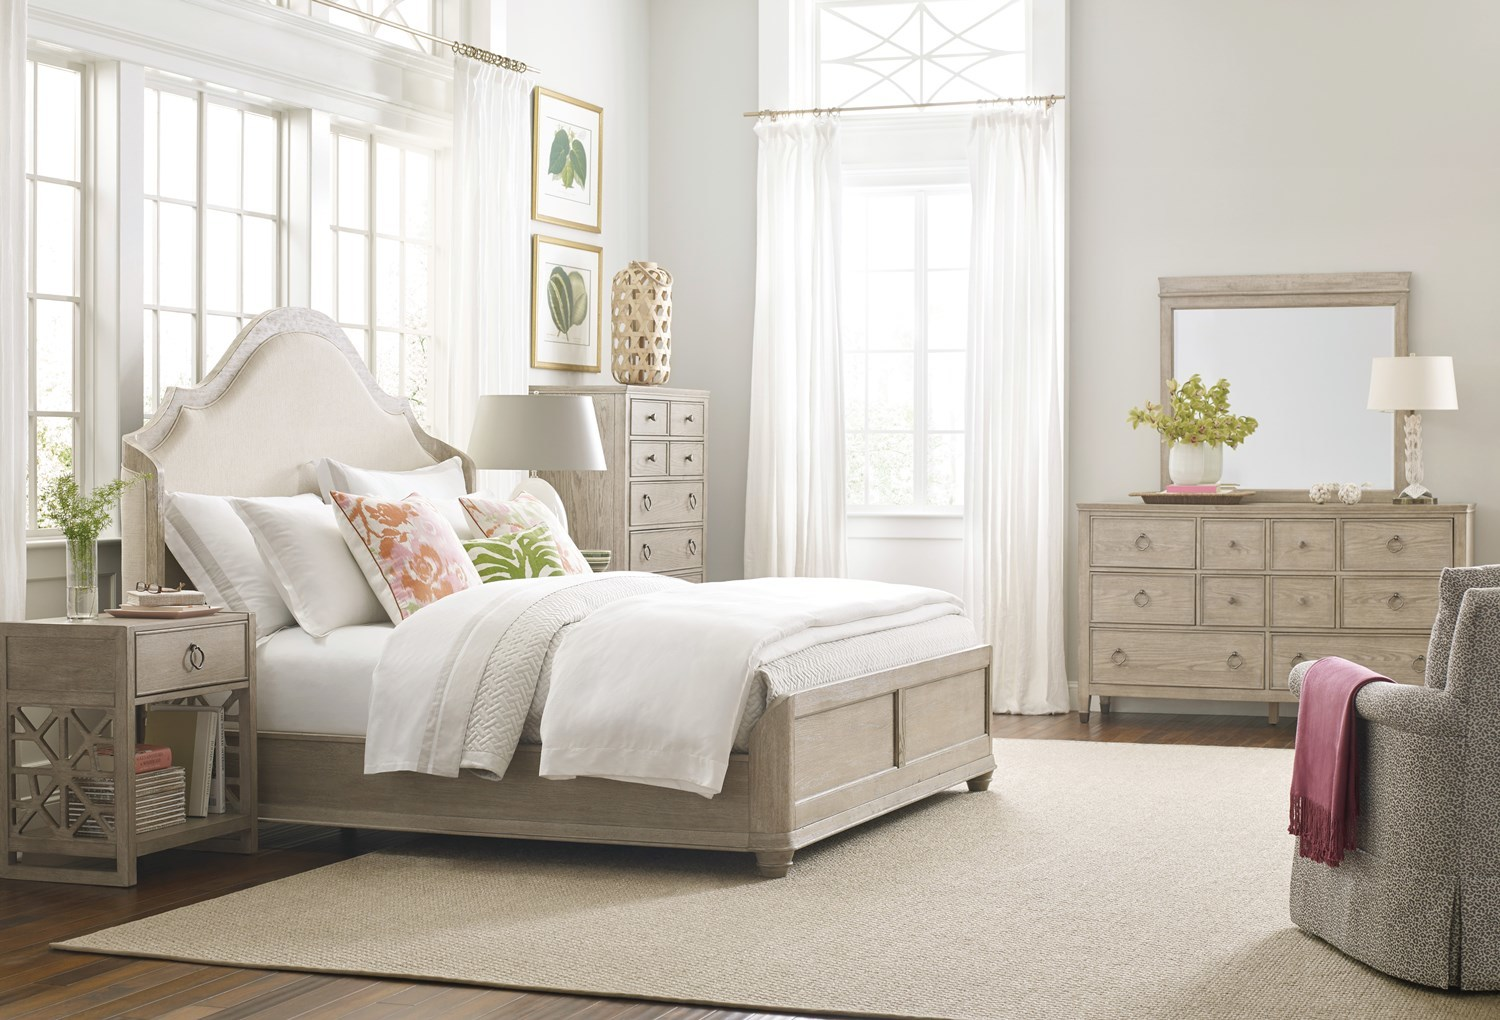 1540415734Vista_BedroomFurniture